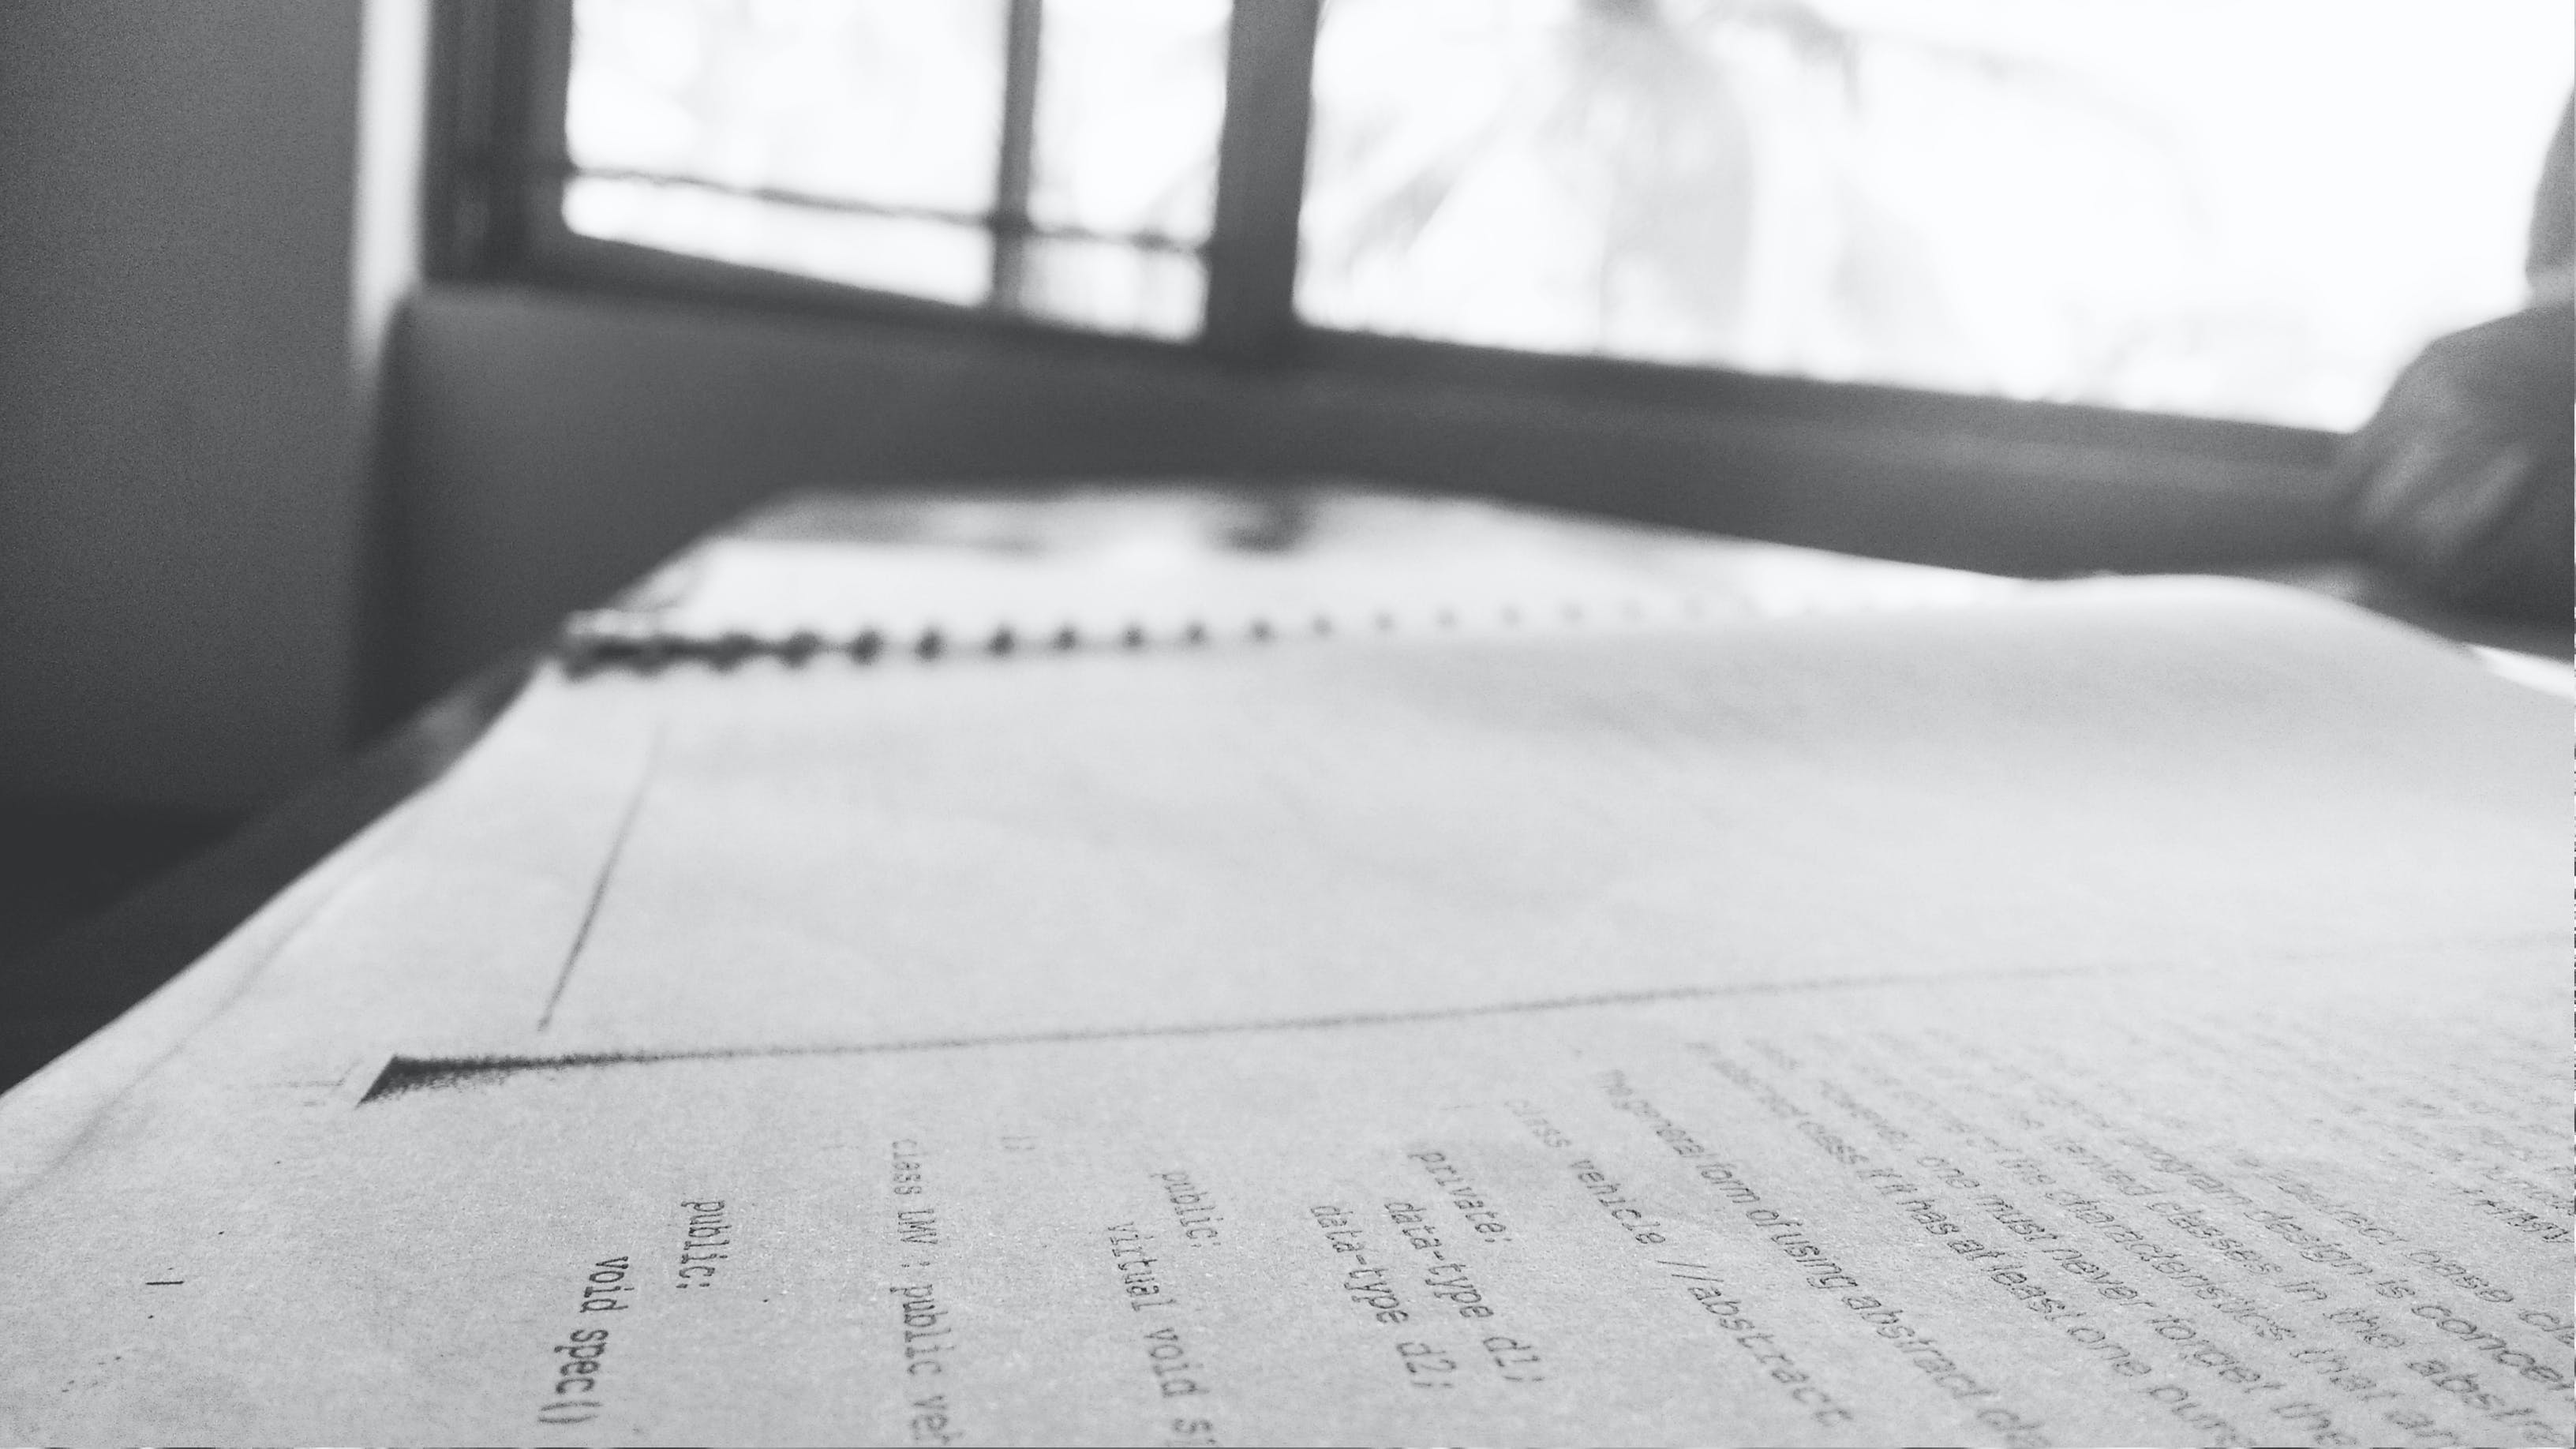 Free stock photo of background, black and white, books, college